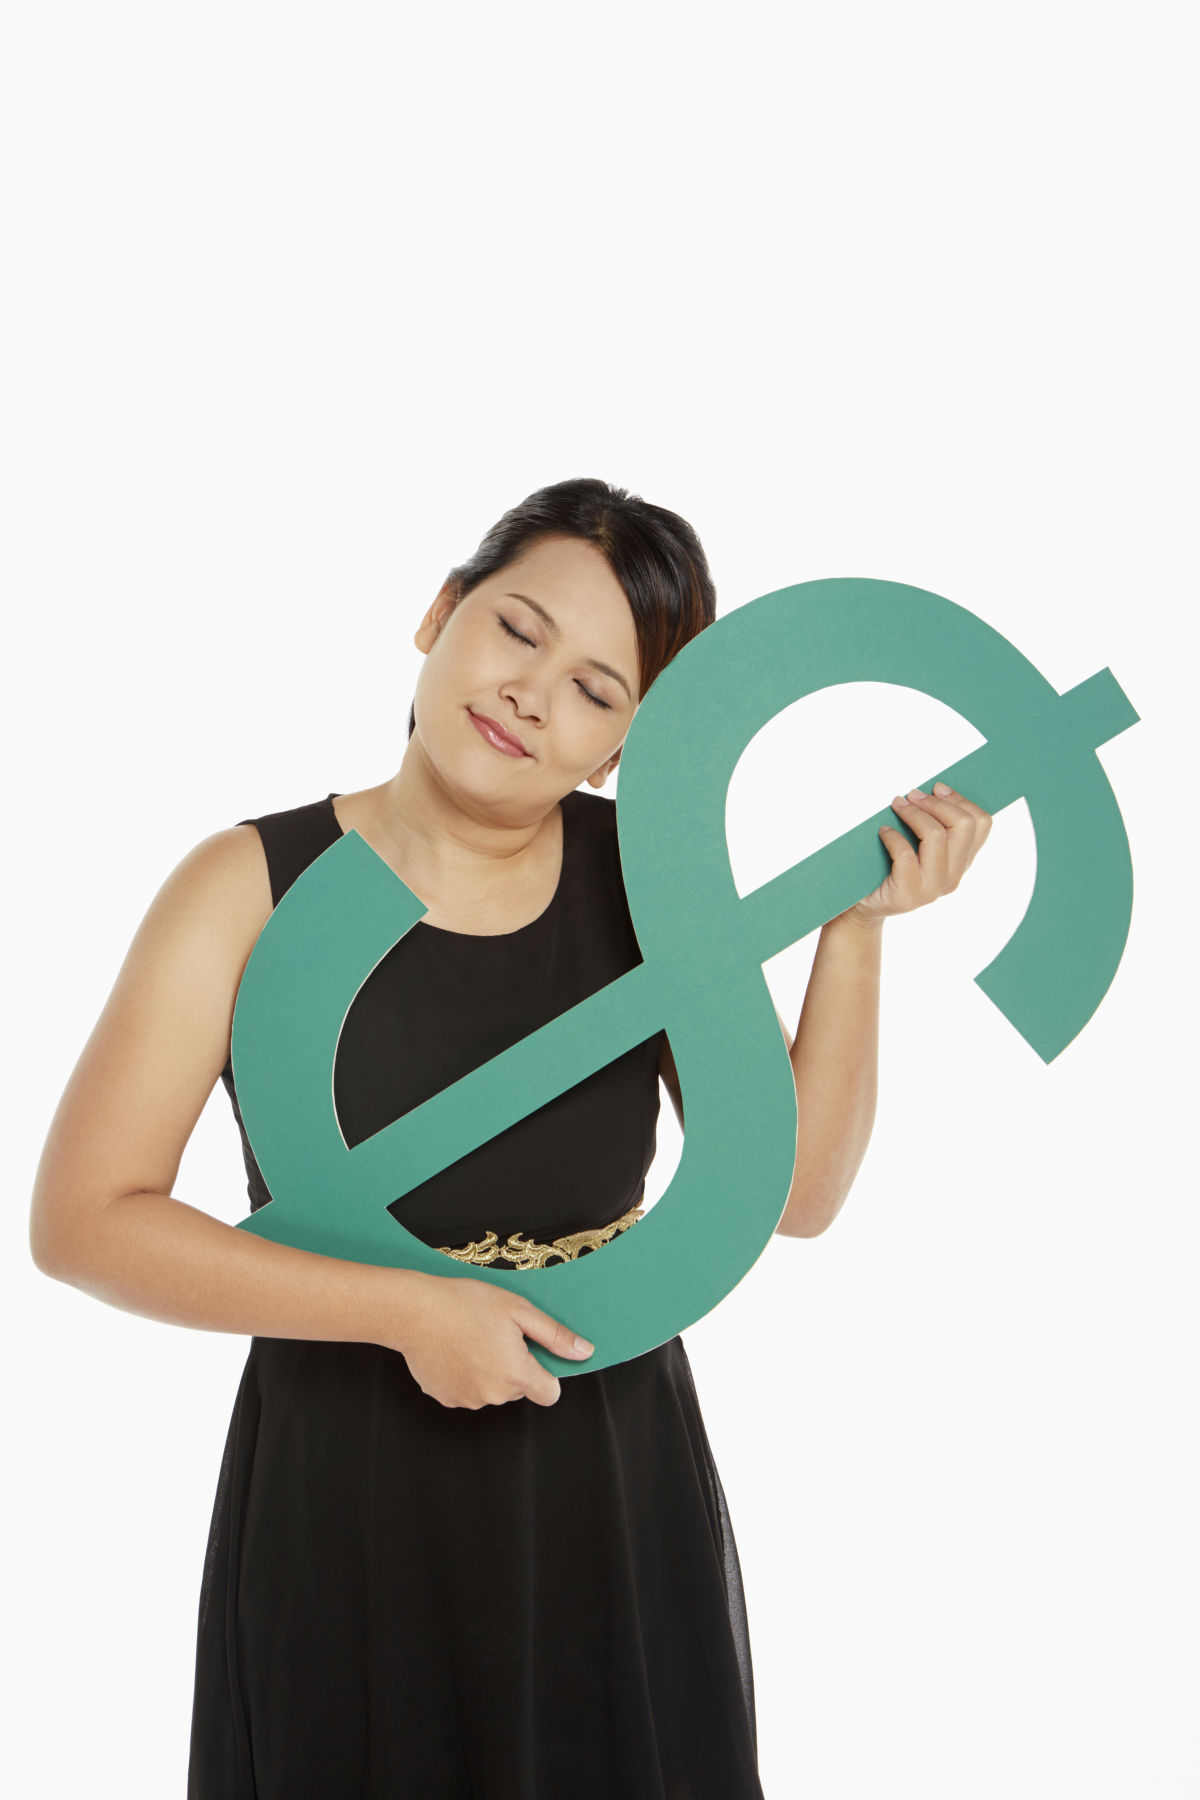 Woman laying her head on a dollar sign